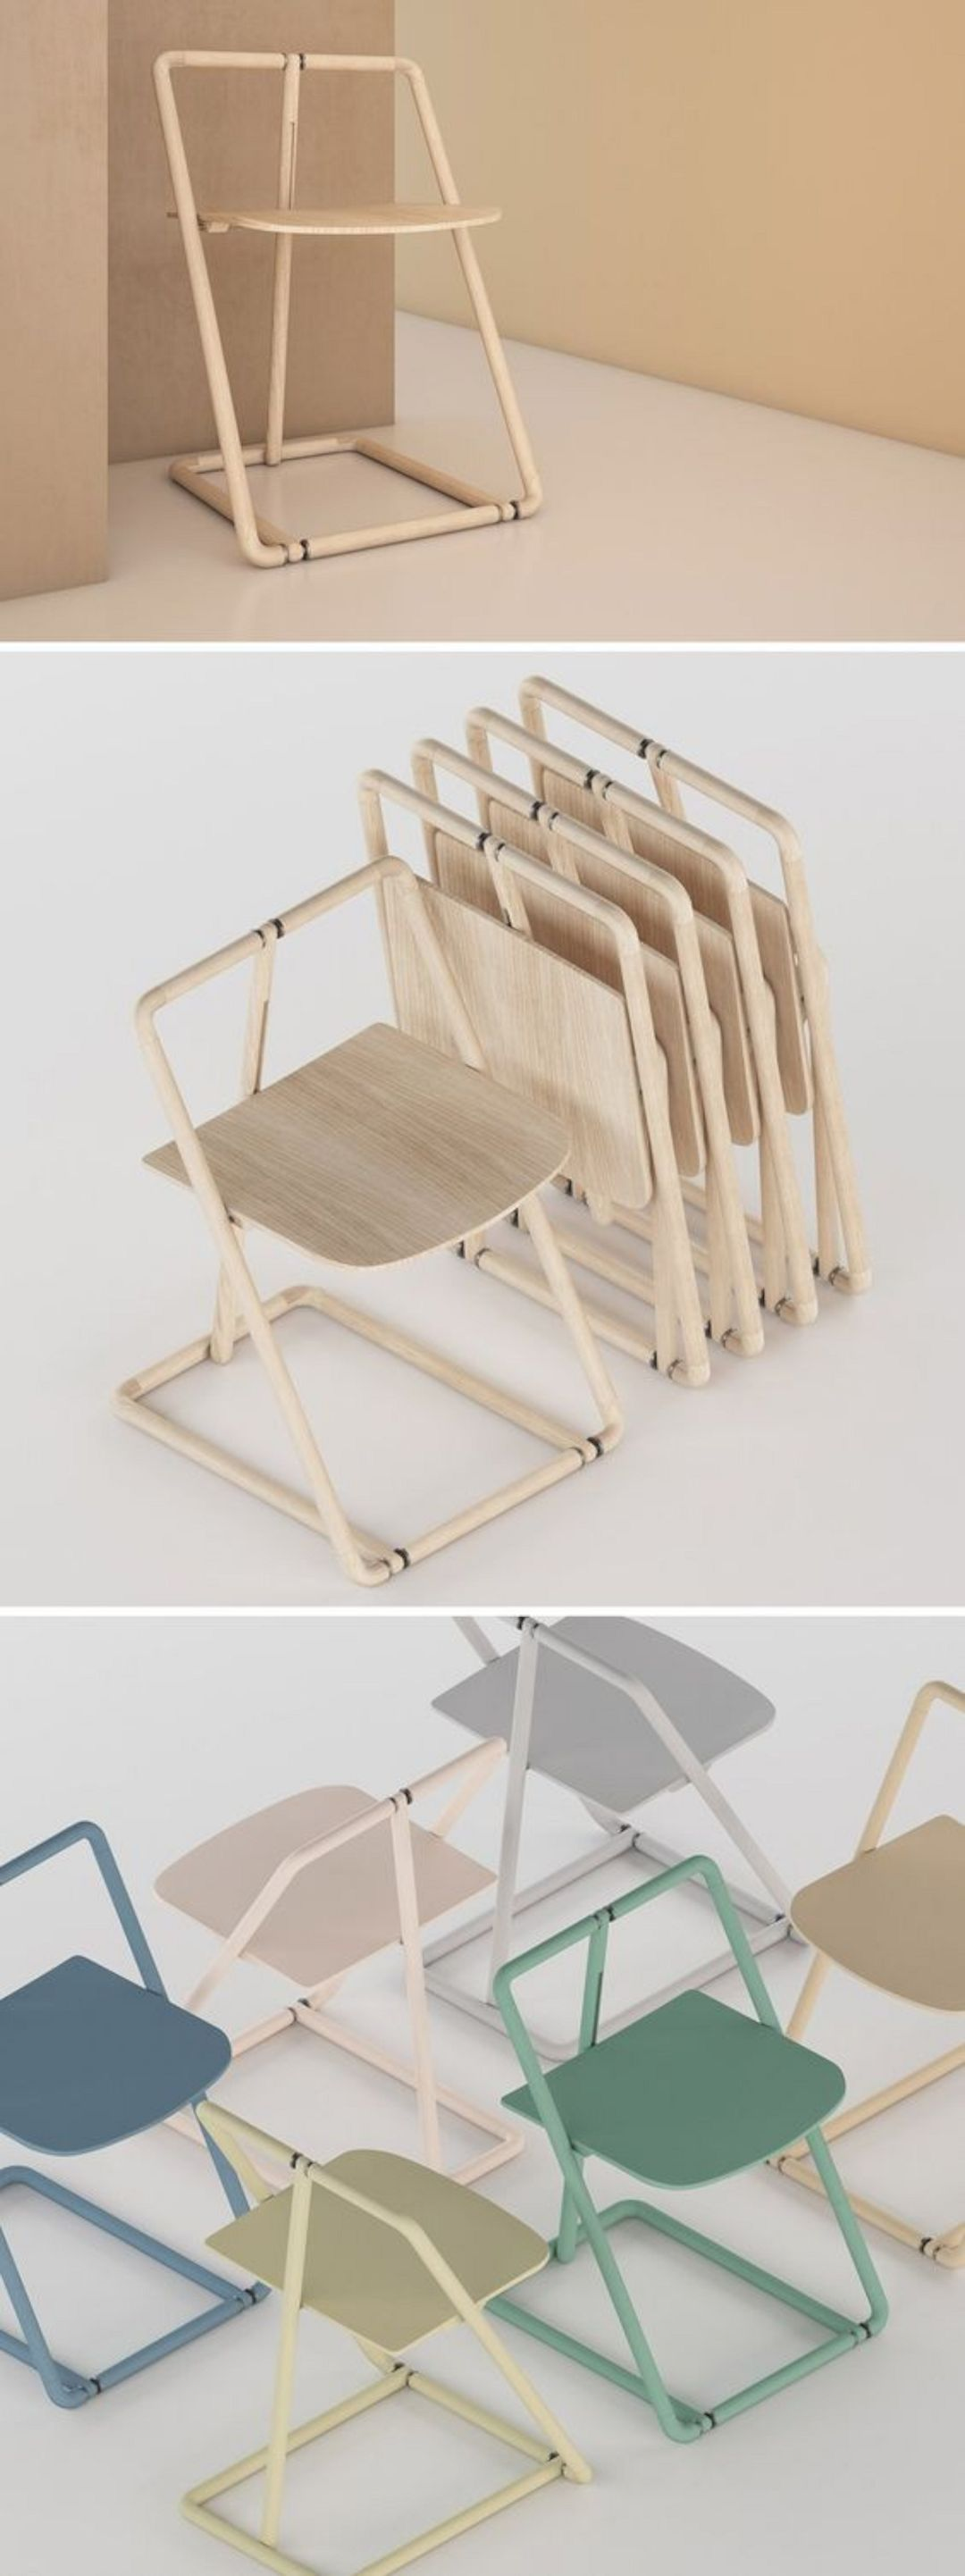 16 Clever Folding Chair Designs is part of Chair design - The folding chair is kind of favorite chair because it is a flexible chair that you move easily  It is different from another kind of chair, the folding chair comes with a unique design  Some of them